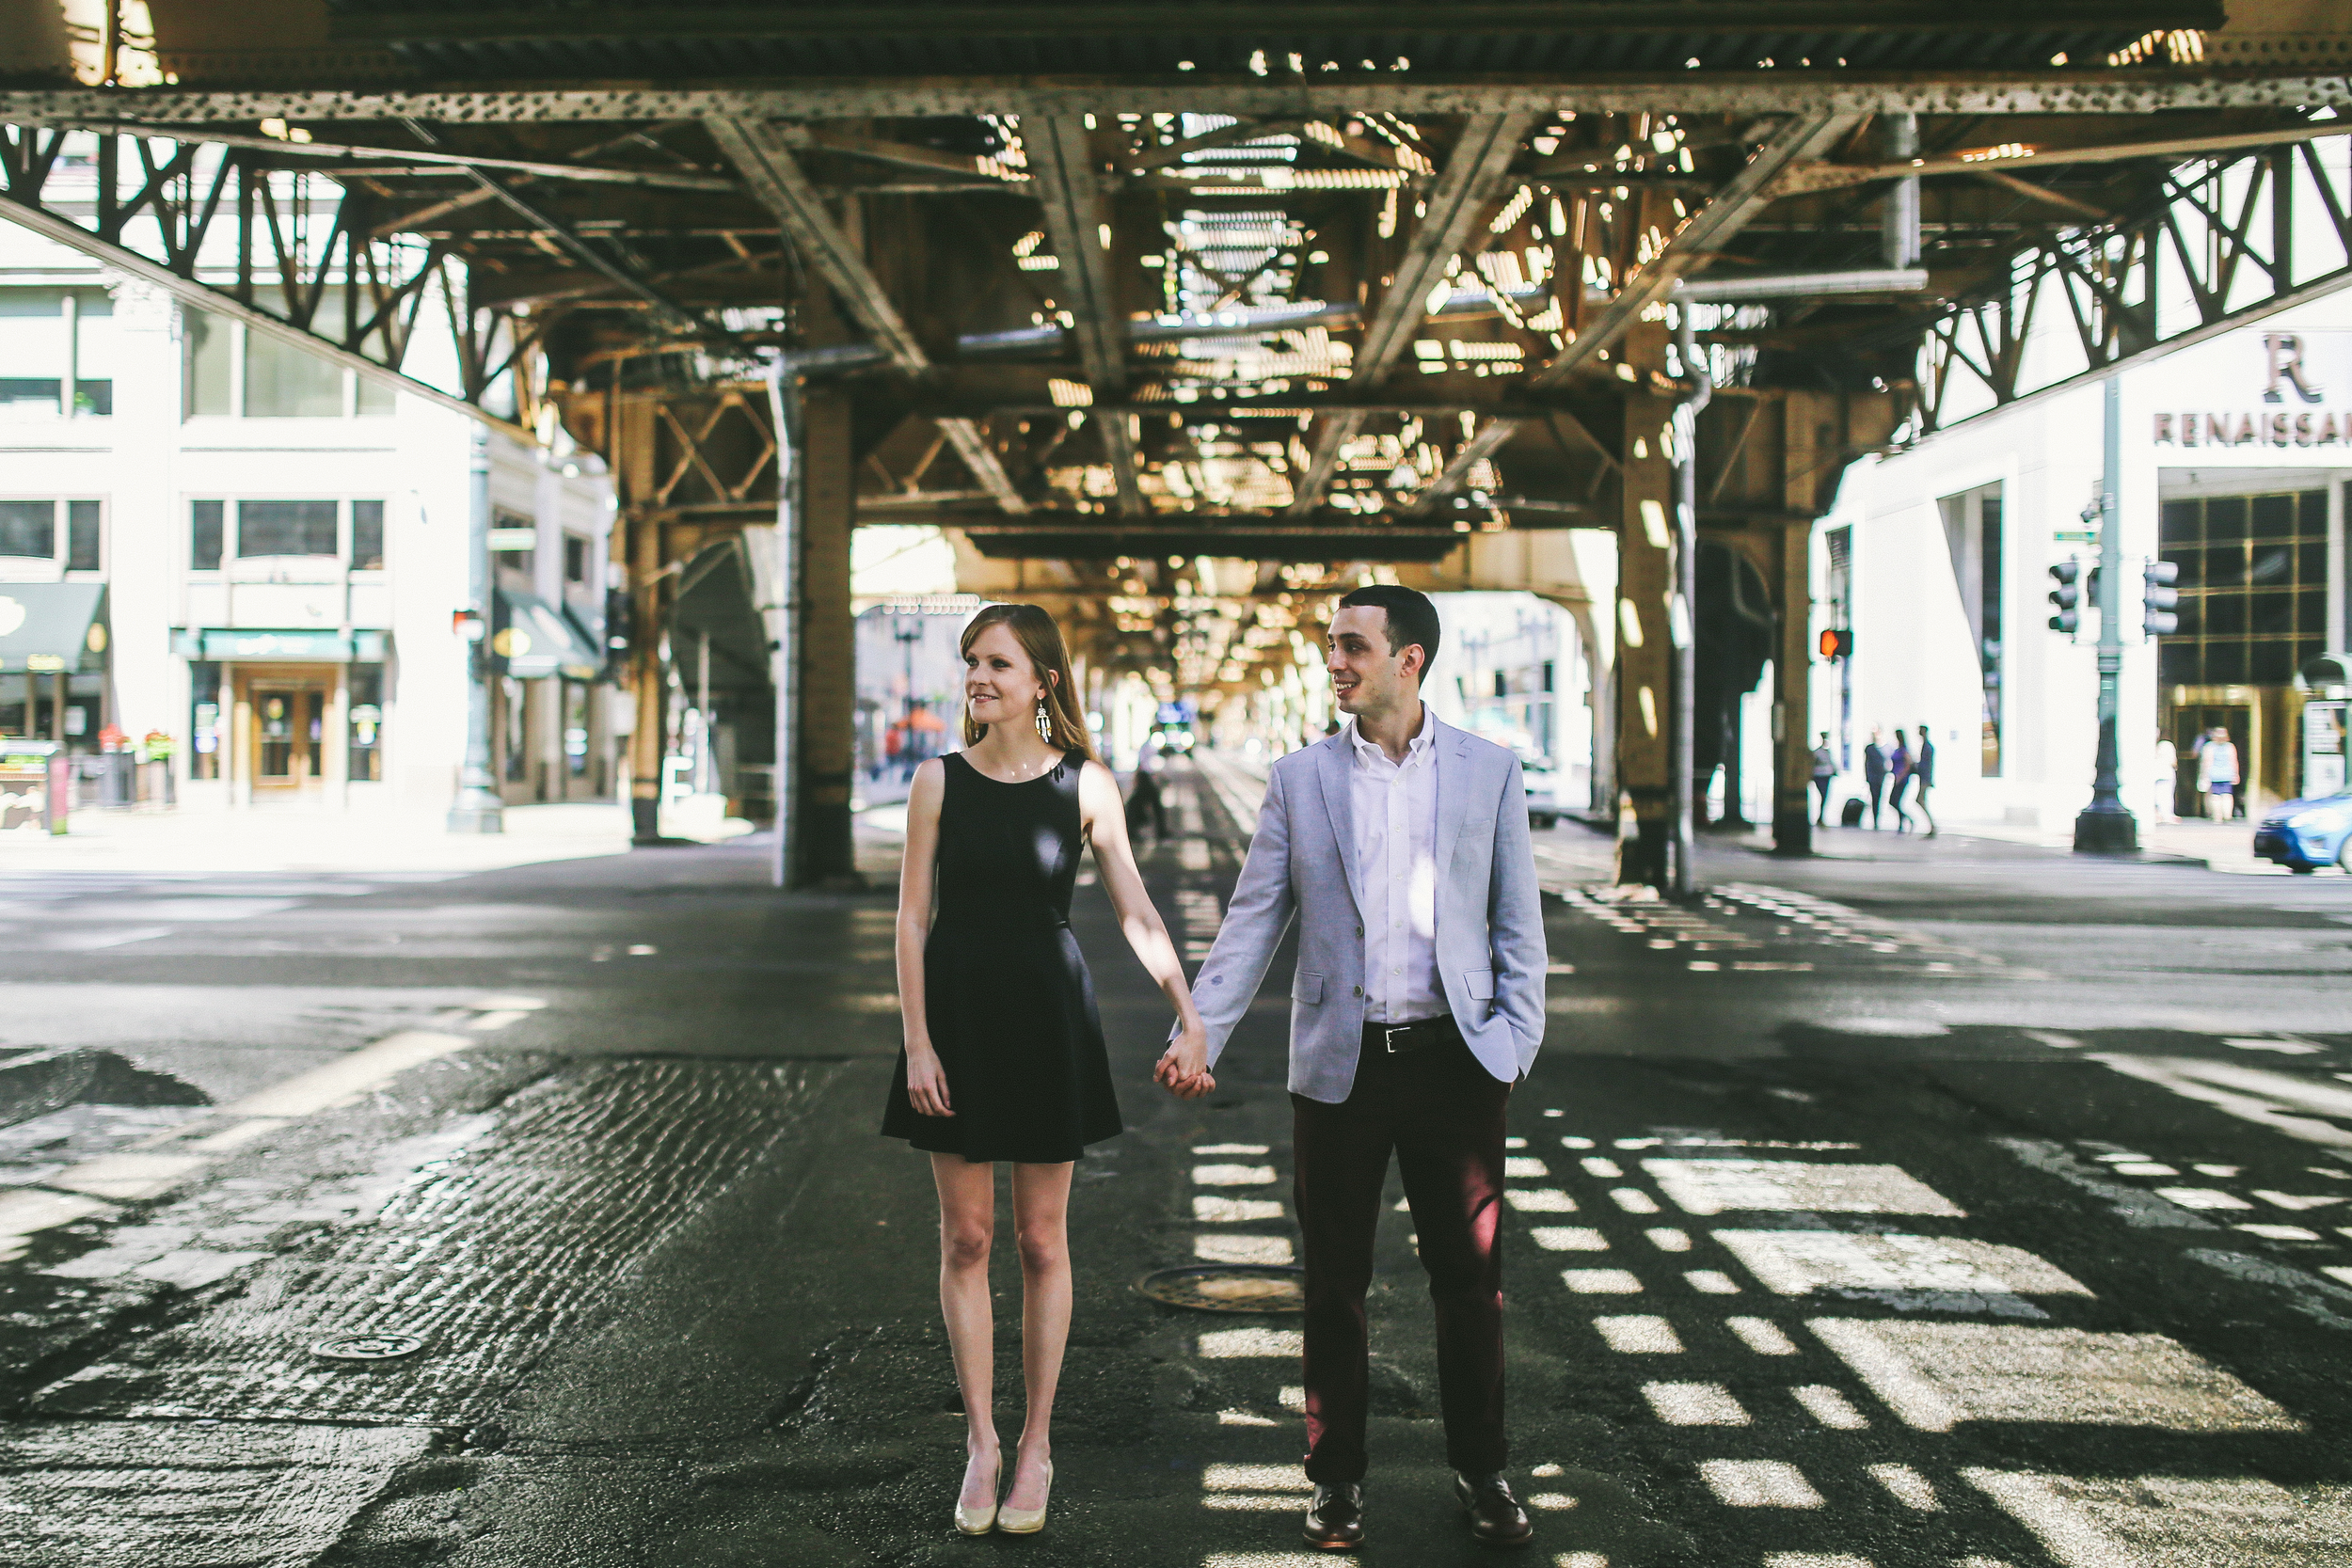 Chicago middle of the road, under the train engagement adventure photographer